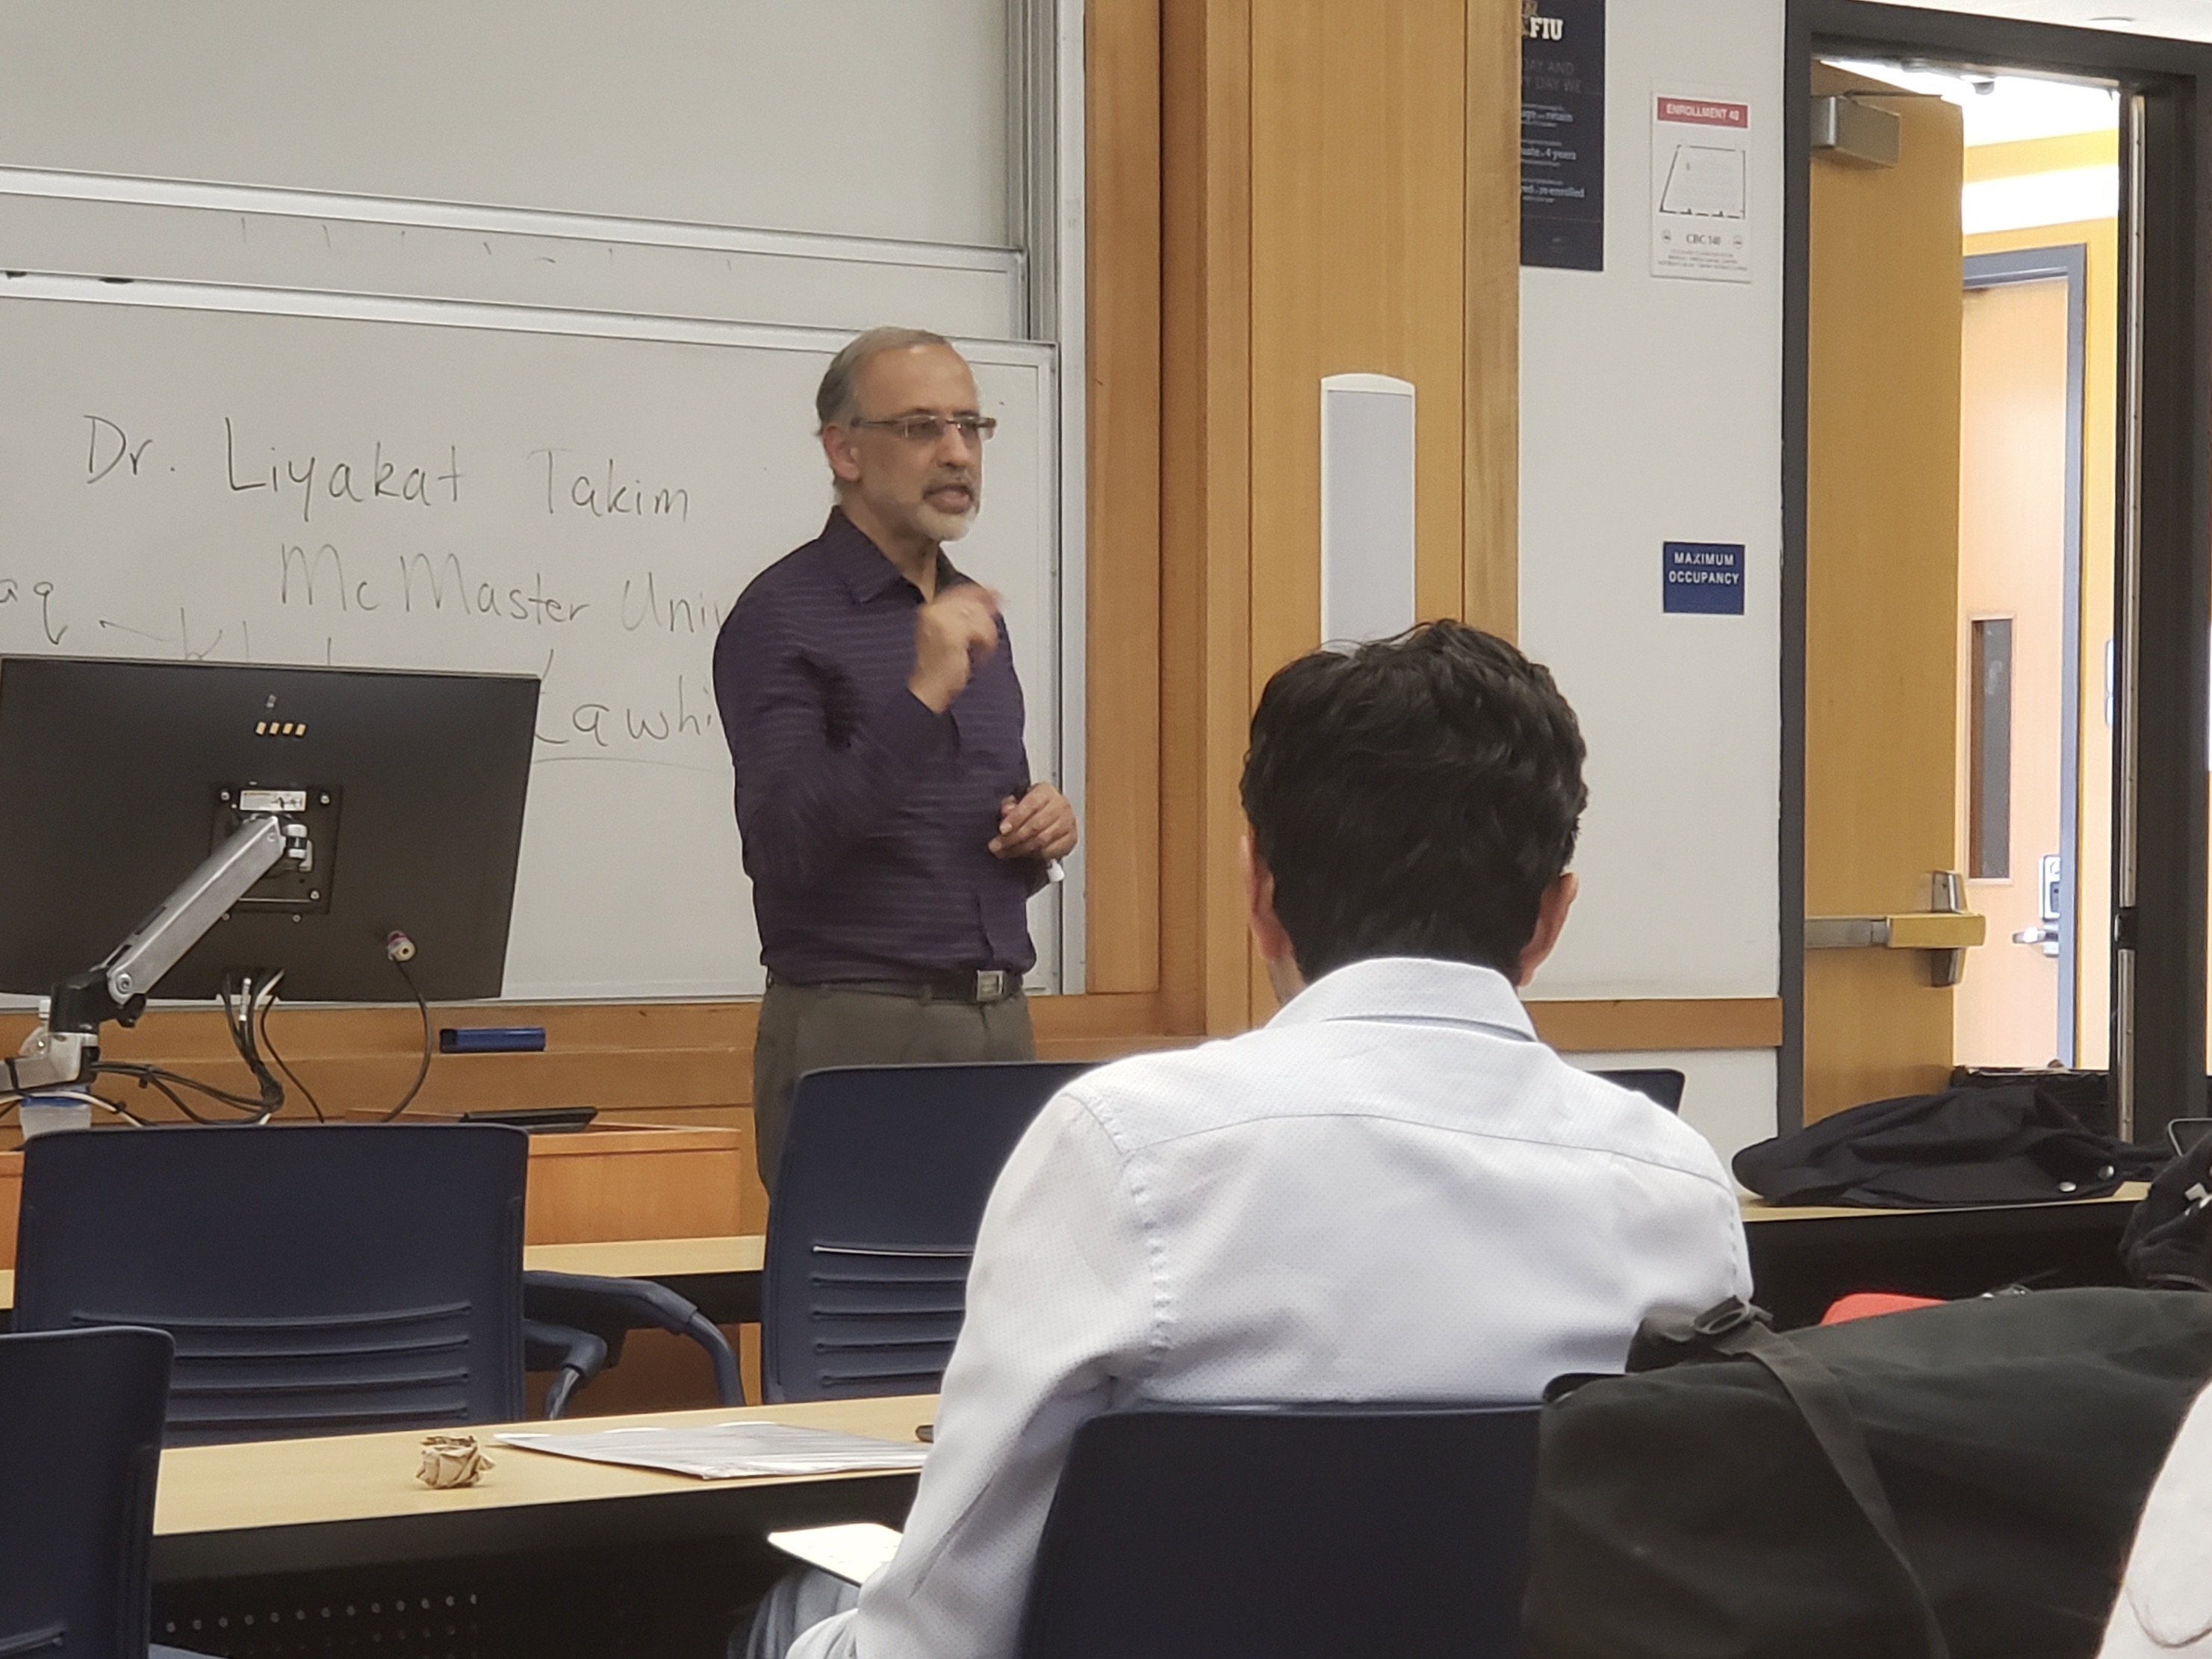 Professor Discusses Islamic Perspective on Climate Change - PantherNOW